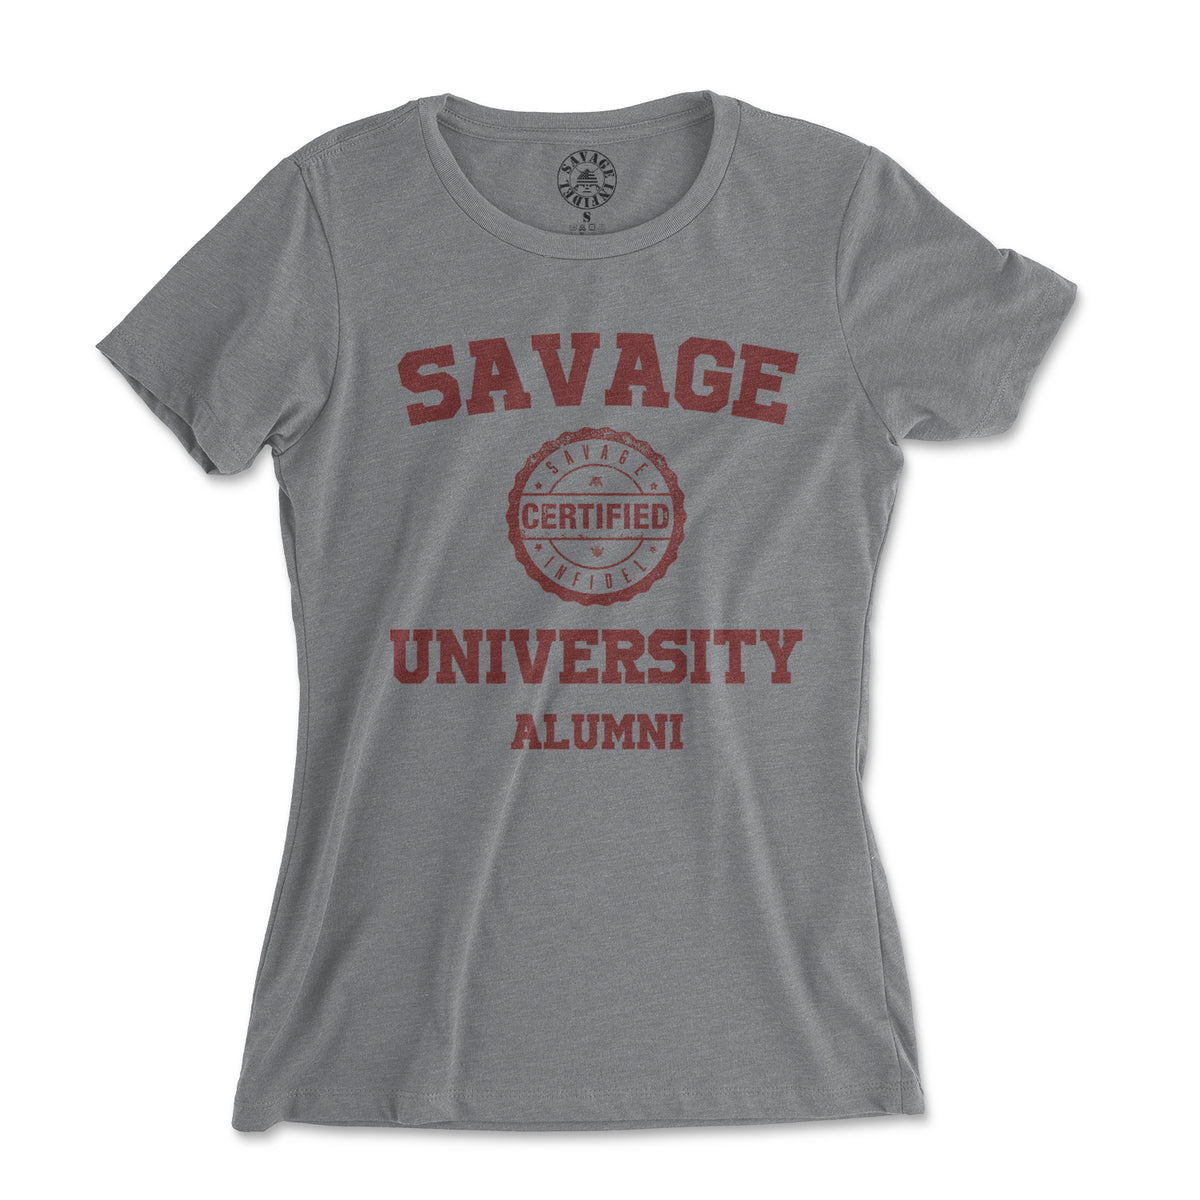 Savage University Alumni - Women